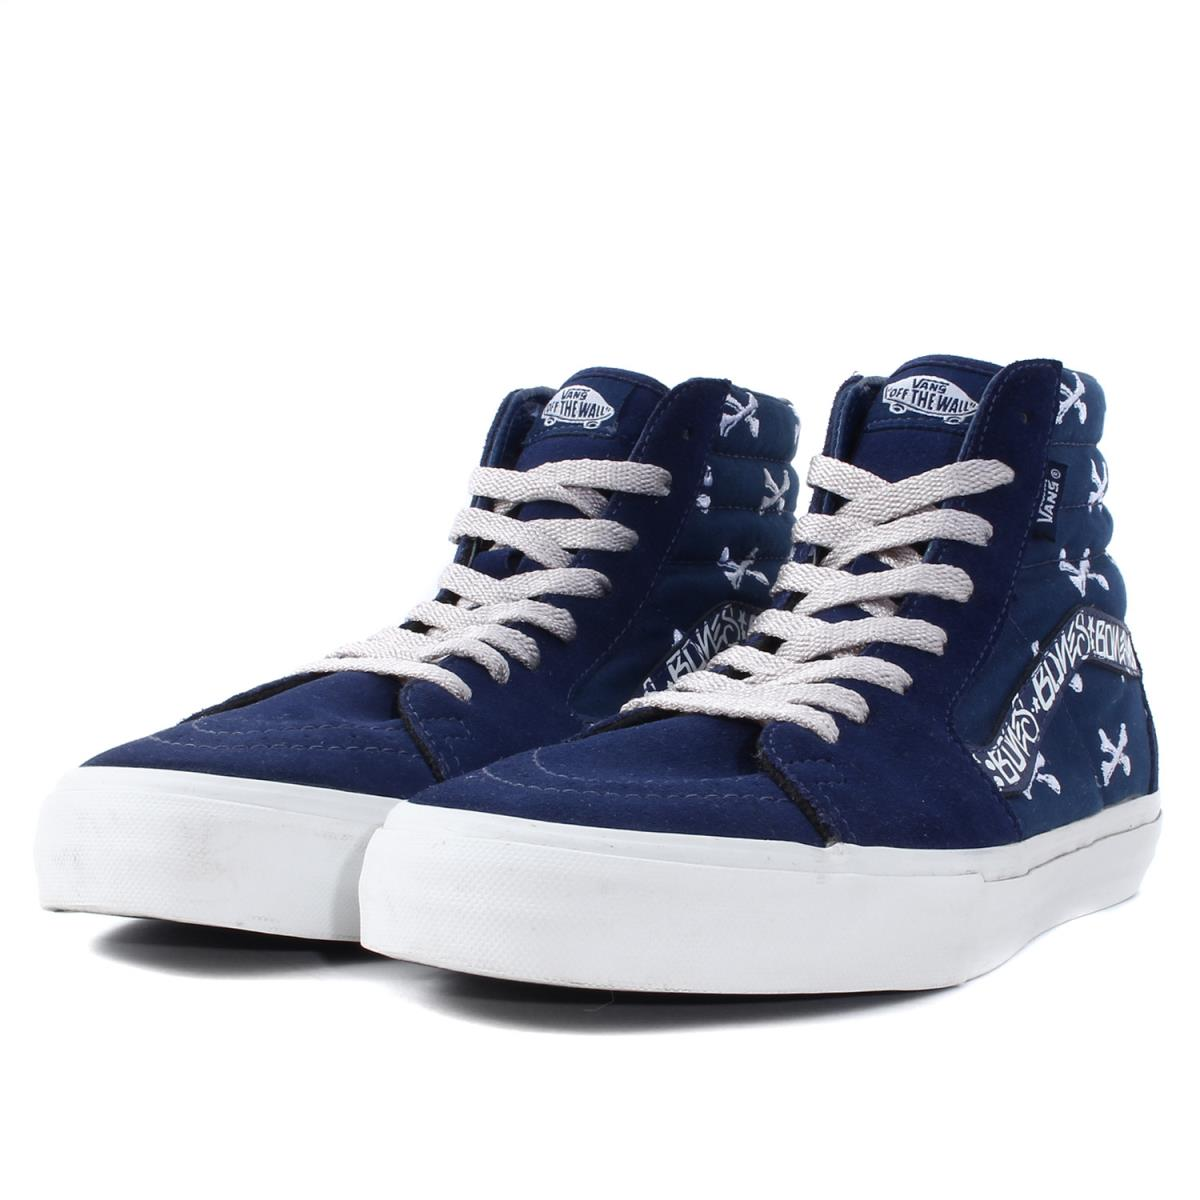 c445848c50f8dd WTAPS (double taps) X VANS SK8-HI SYNDICATE CROSS BONE blue beauty product  US9.5(27.5cm)